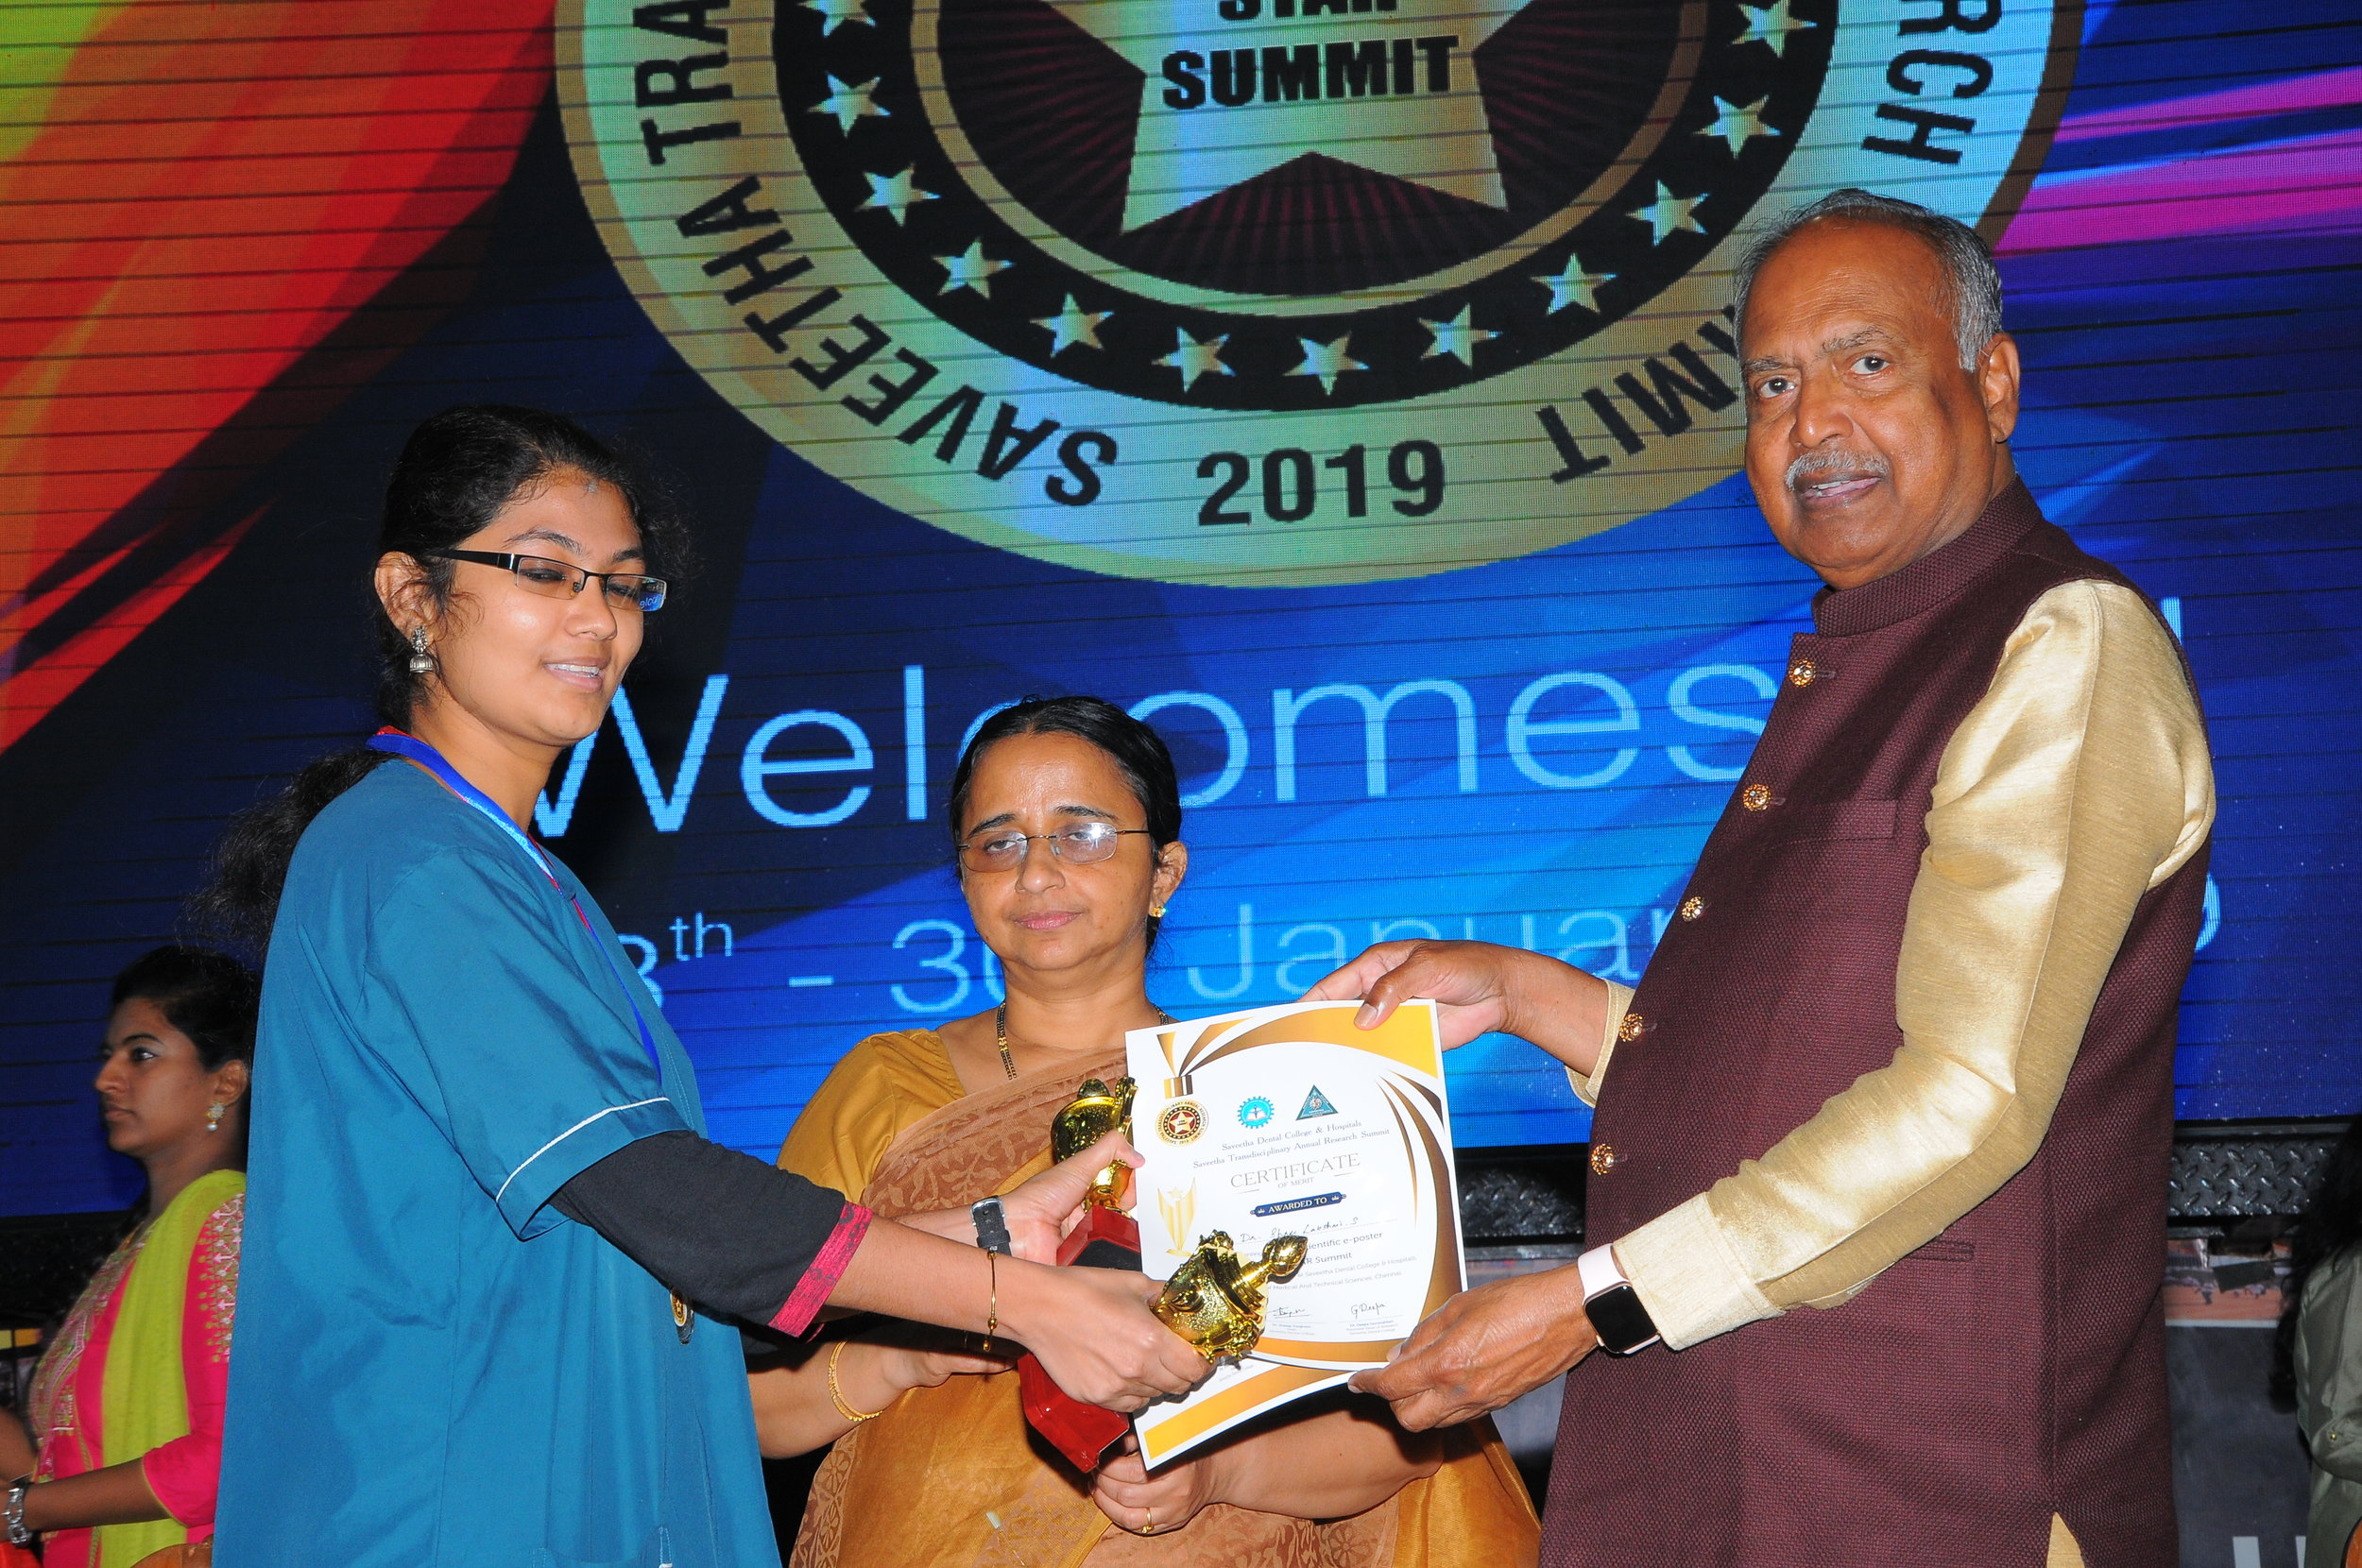 Best Paper - II PlaceDr.Shree Lakshmi - II Yr Post GraduateTitle: Evaluating the effectiveness of microwave decontamination and ultra violet disinfection of tooth brushes, a comparative study